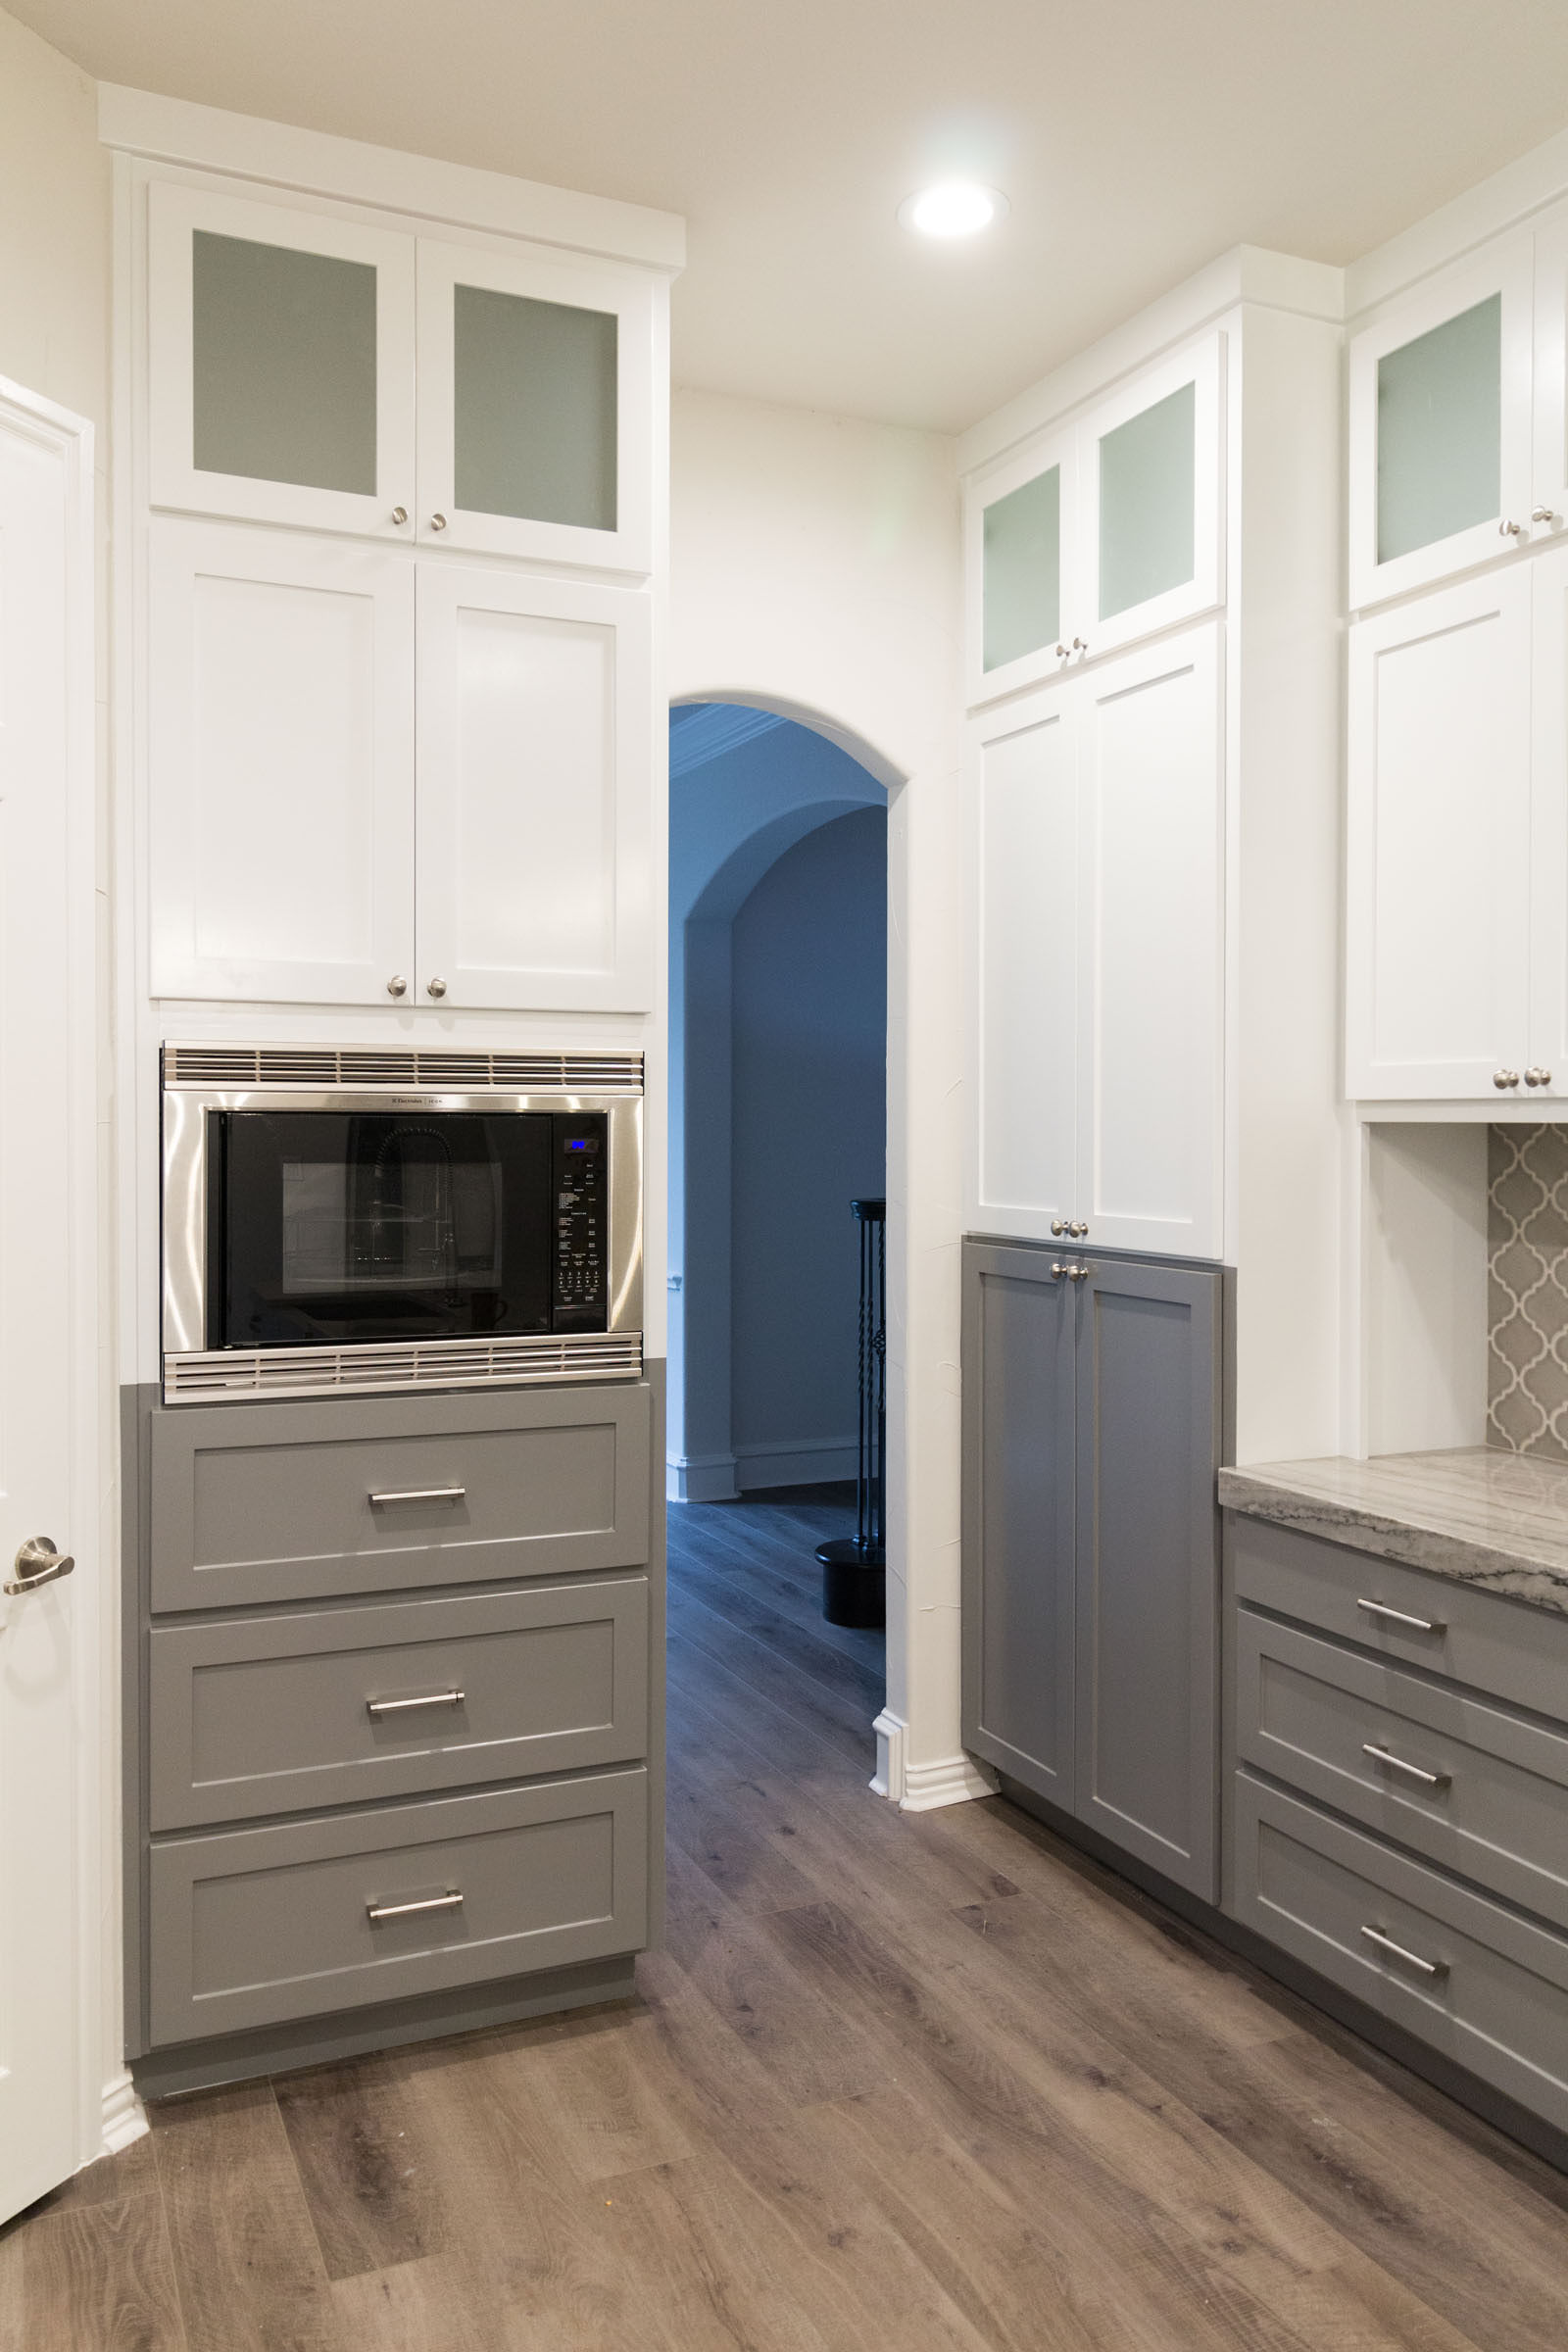 Contemporary kitchen remodel with grey and white cabinets, frosted glass, arabesque tile